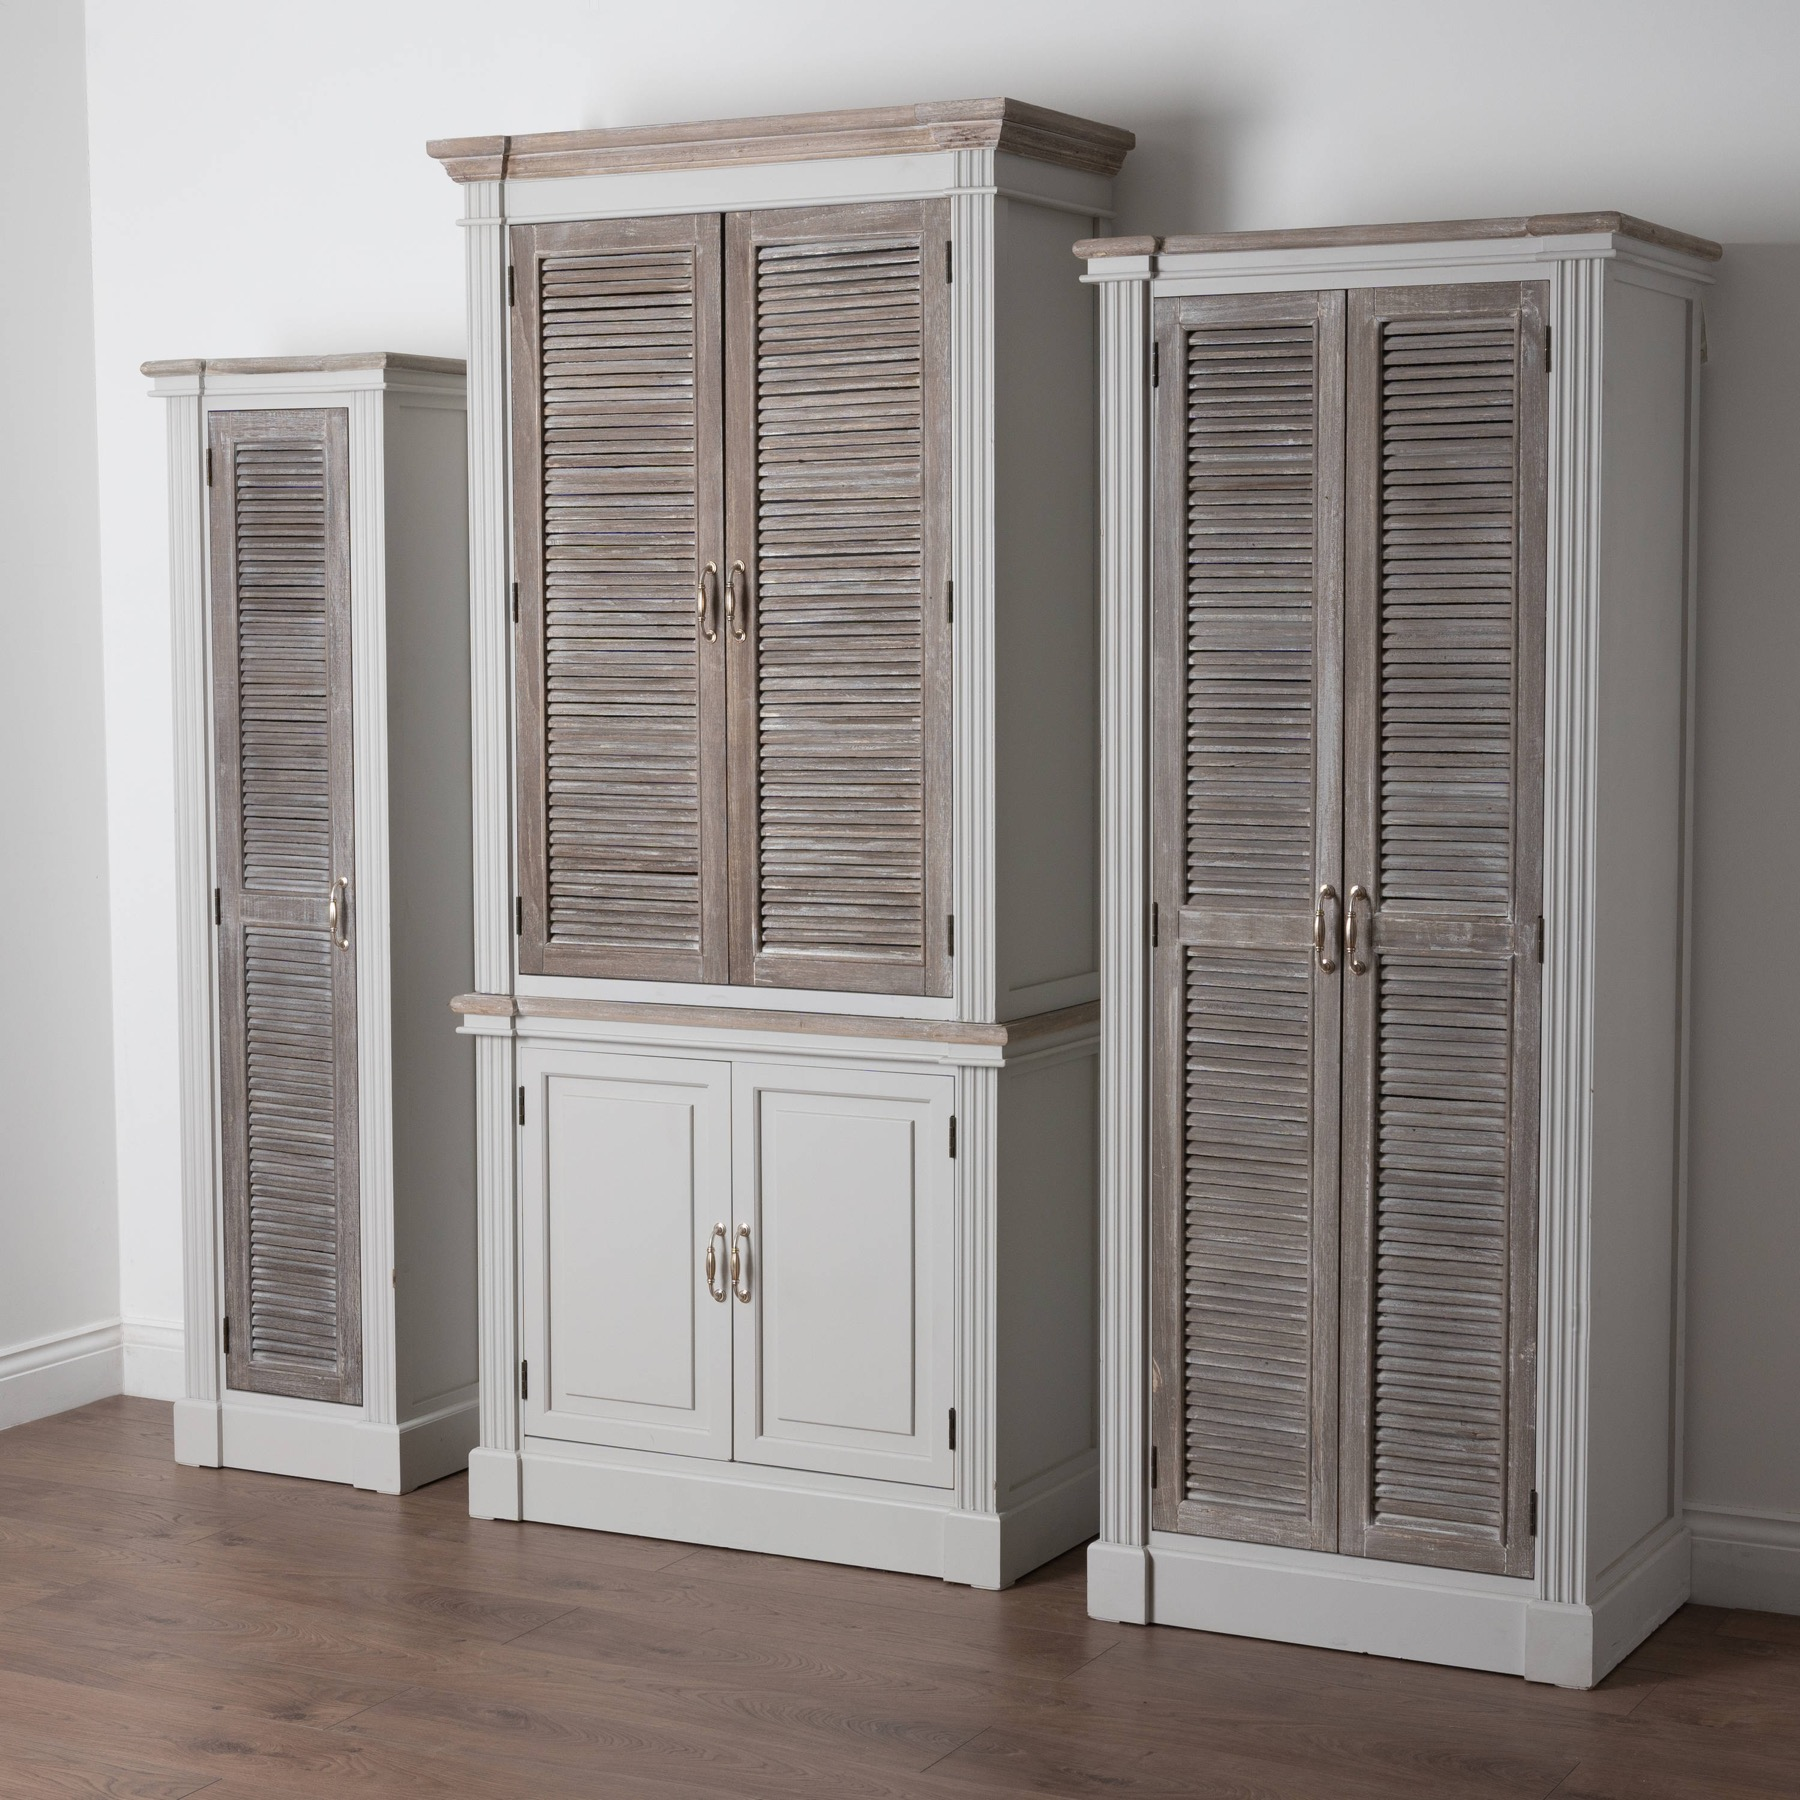 Honfleur Tall Cabinet With Louvred Doors